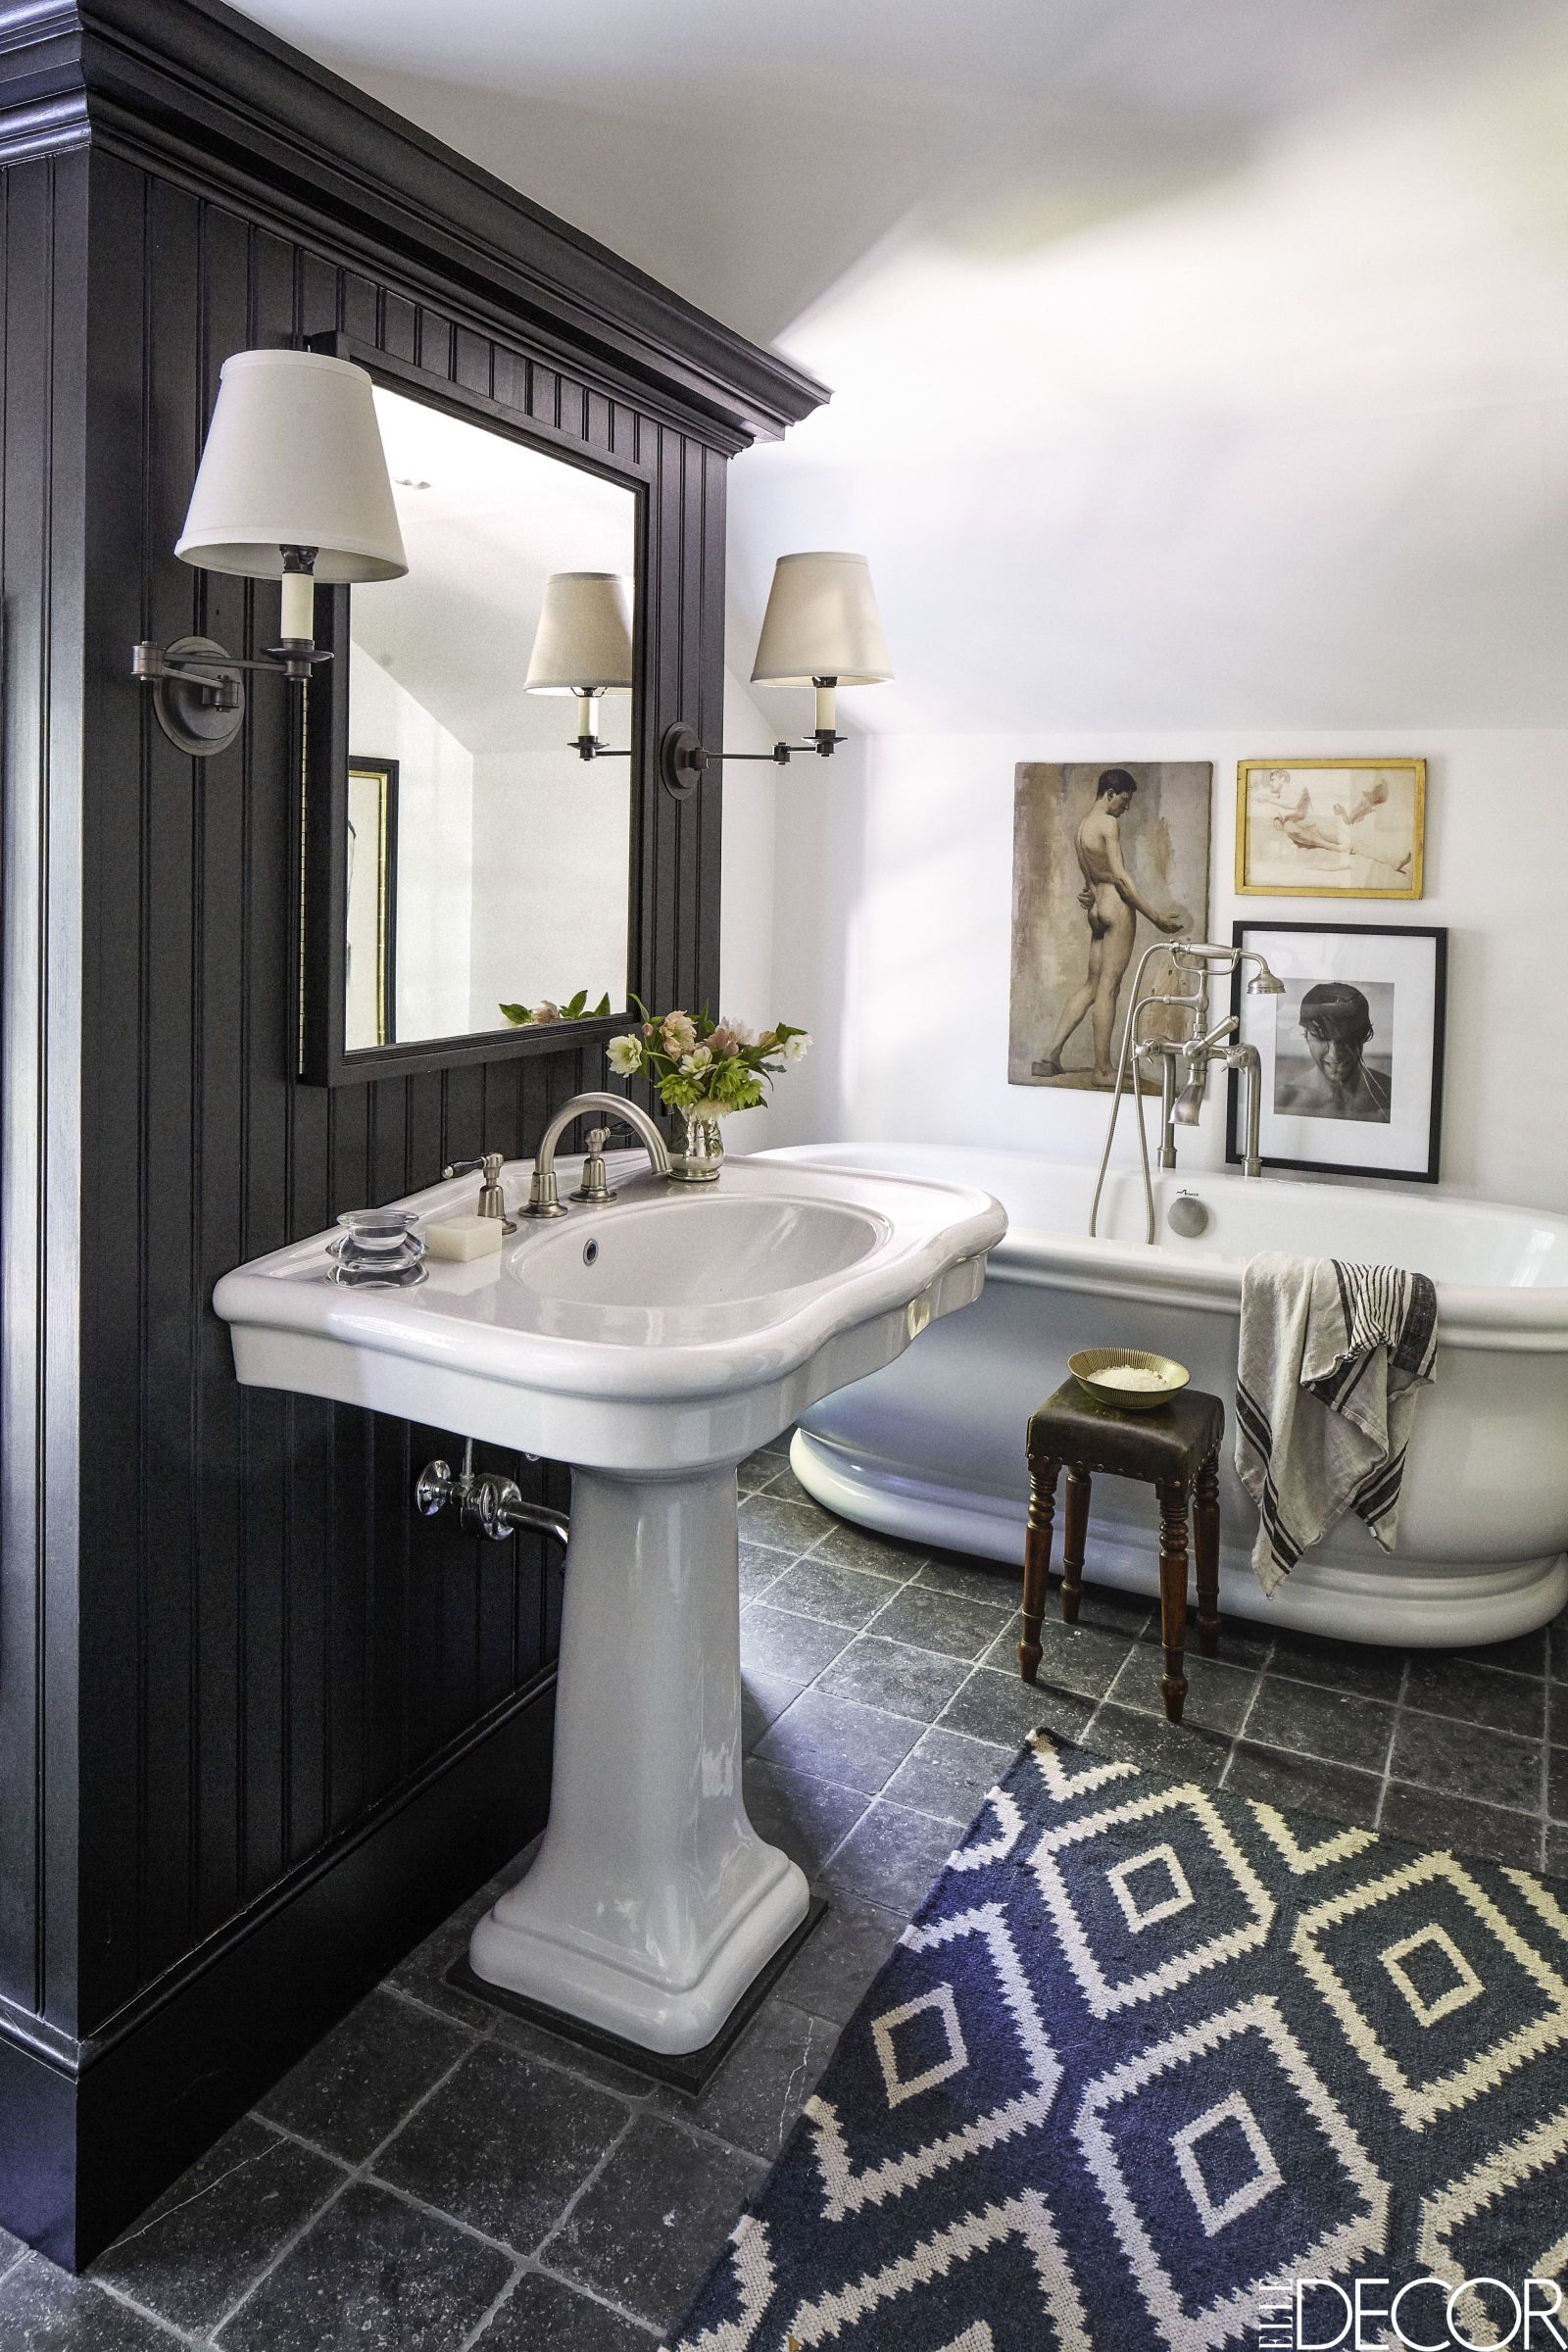 House Tour: A 19th Century Federal Home Gets A Fashionable Update